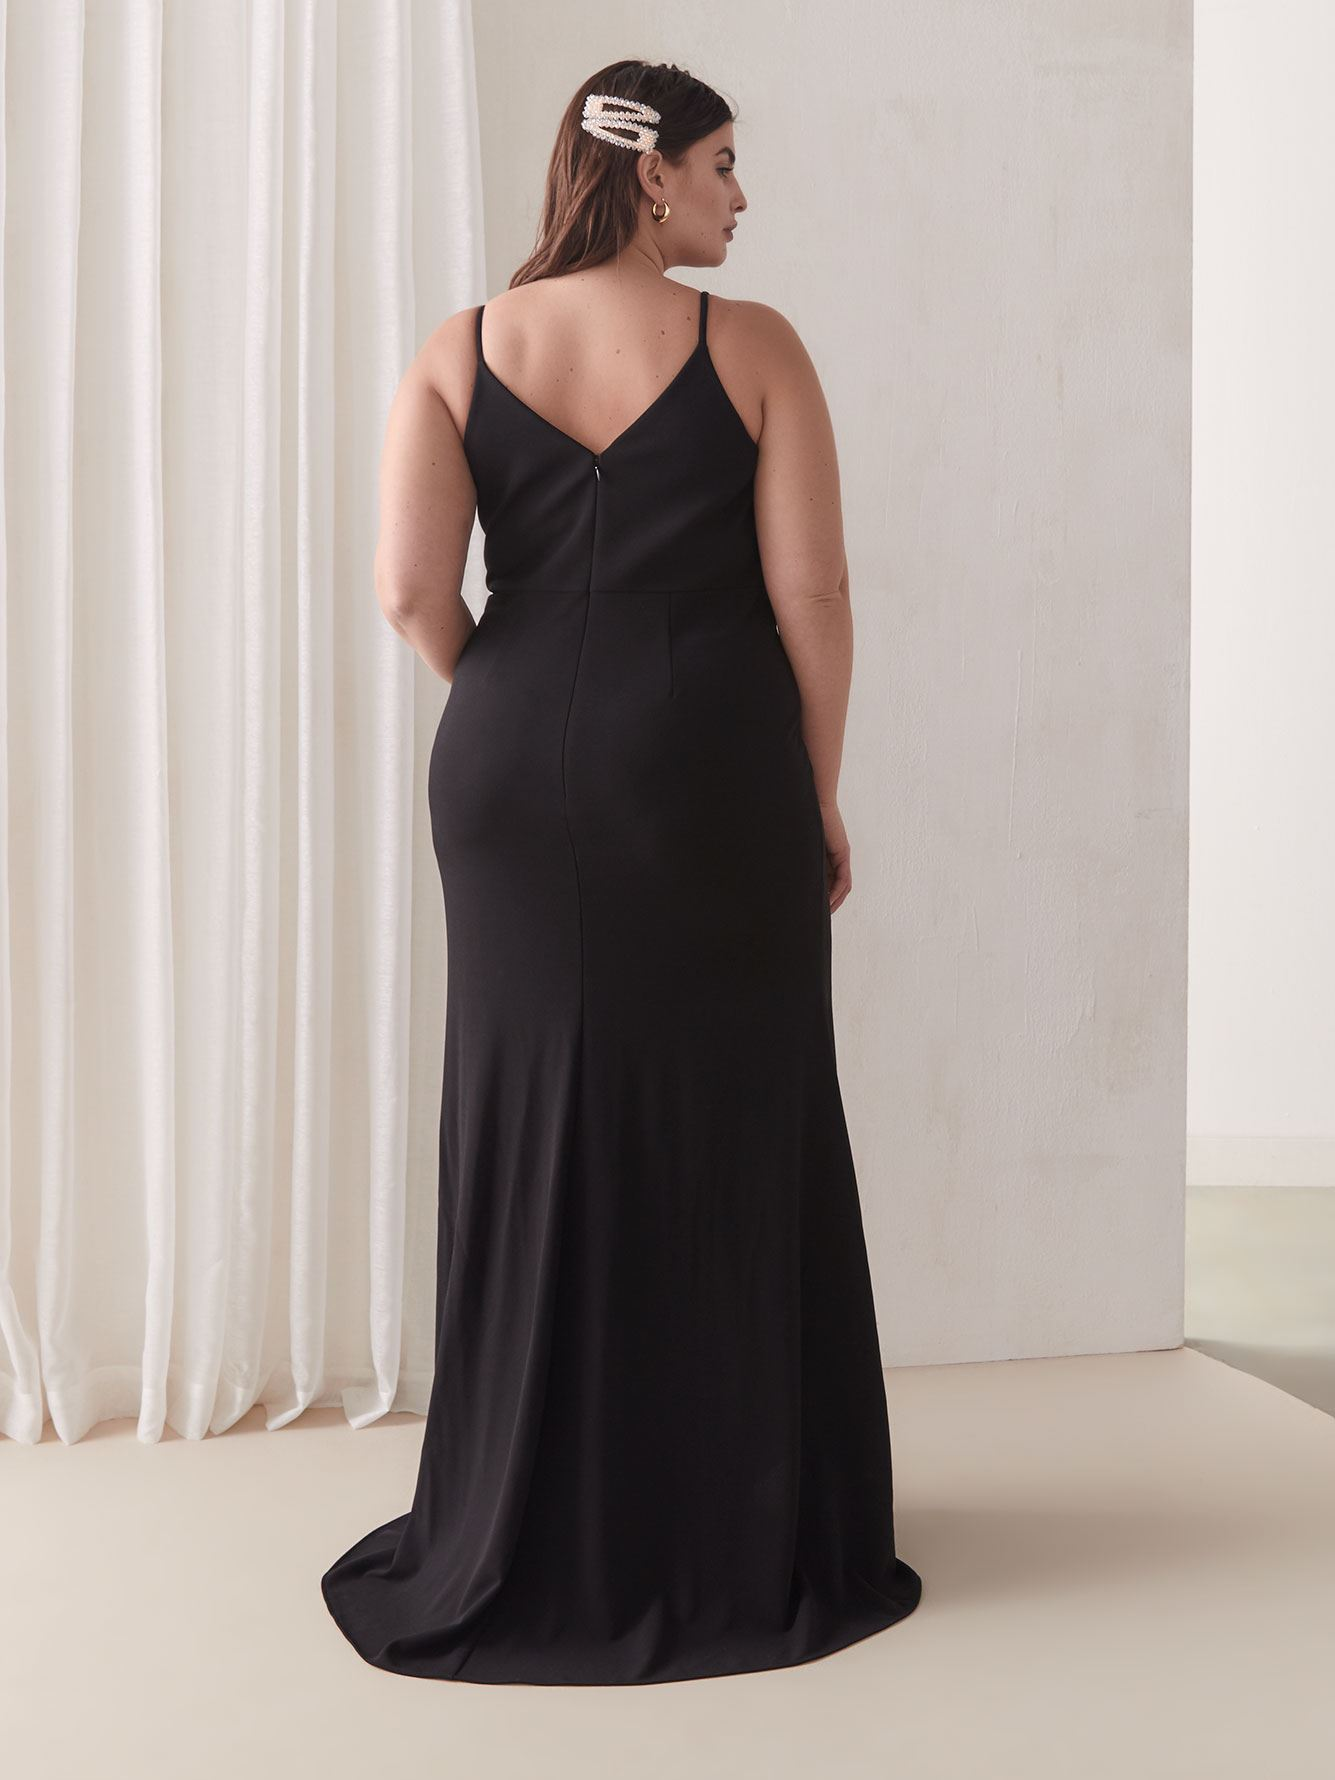 Black Evening Slip Dress - Addition Elle